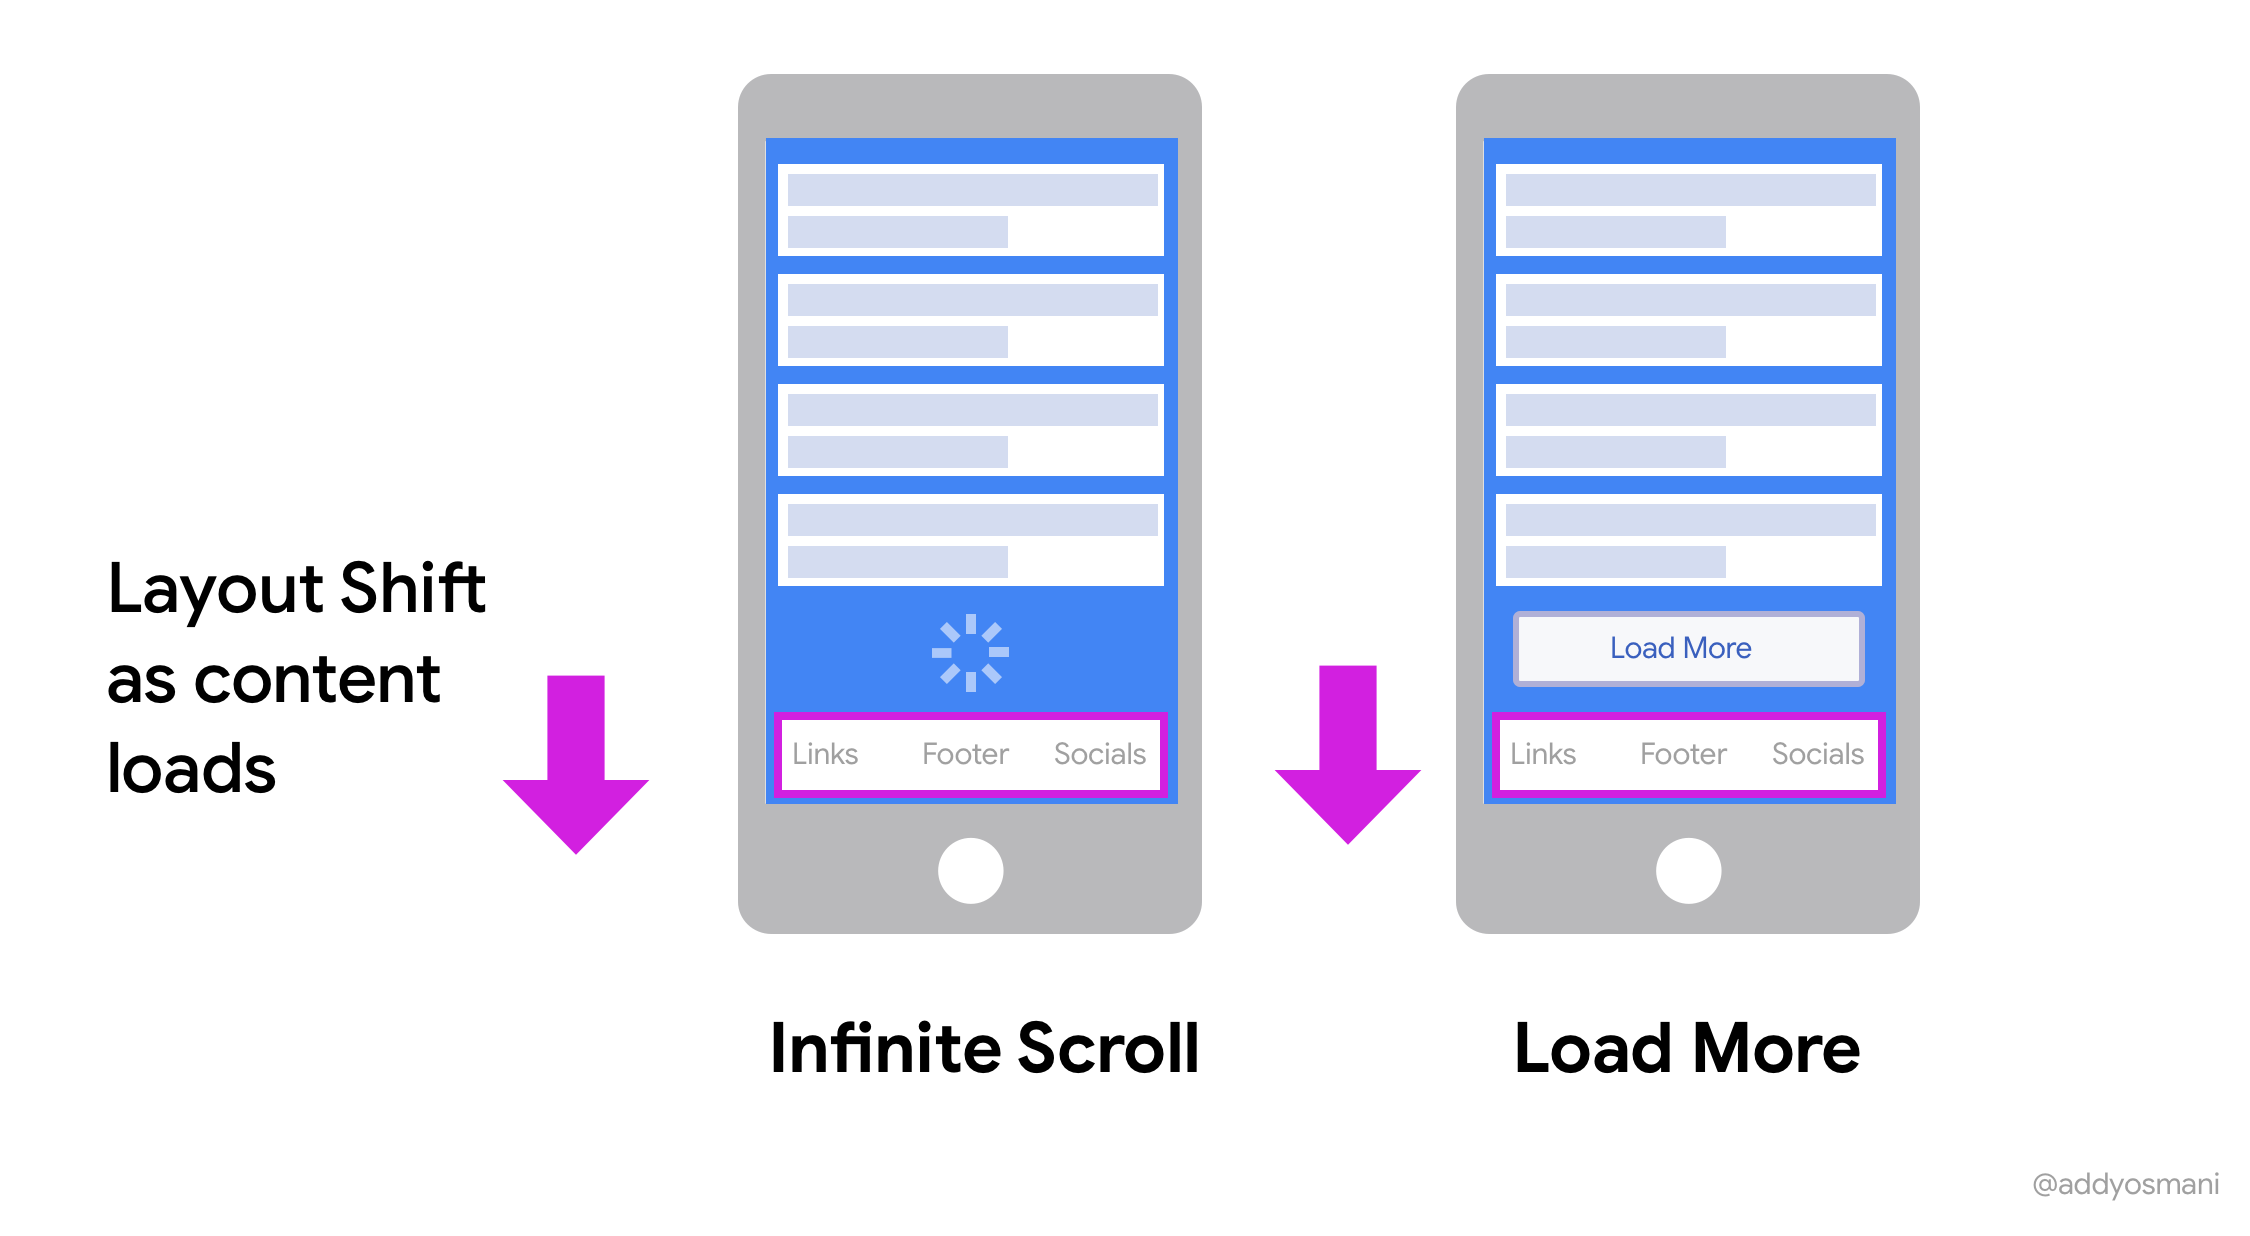 Layout Shifts from infinite scroll